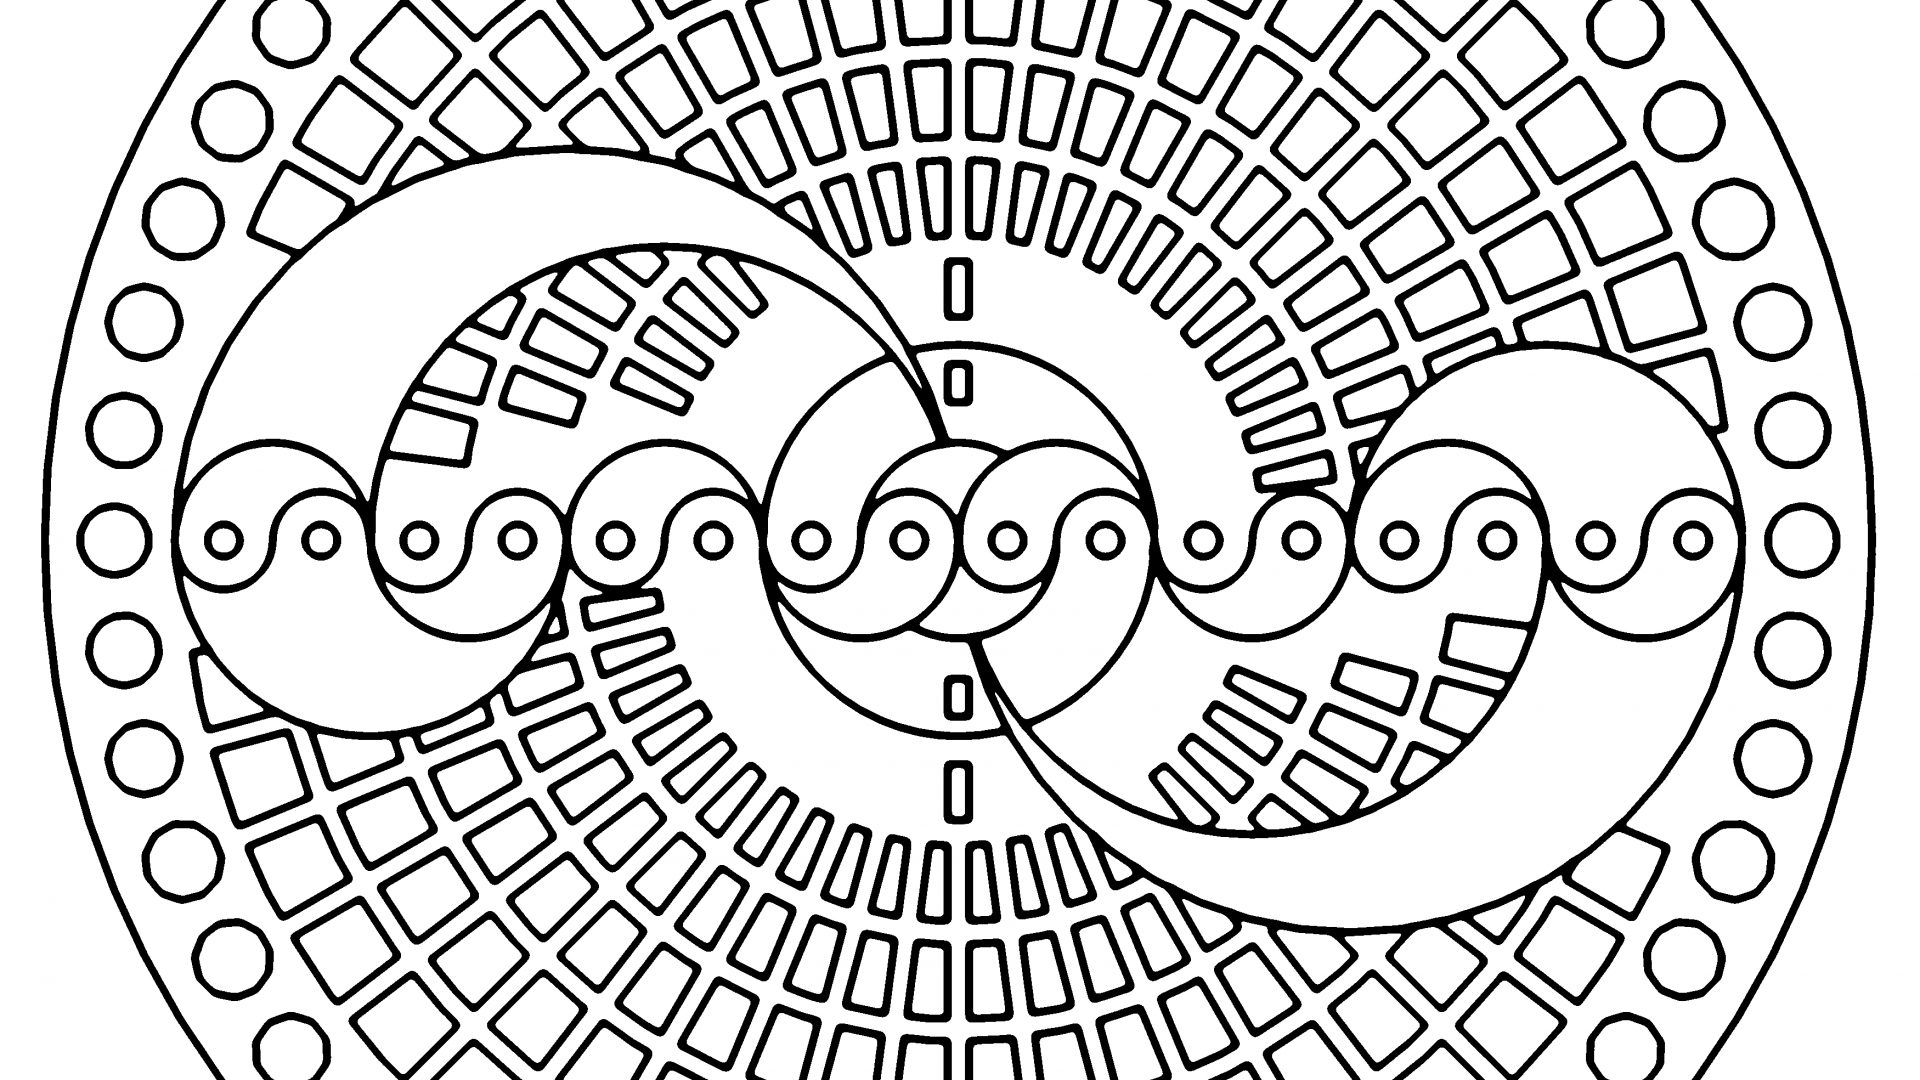 Quiver App Coloring Pages at GetDrawings | Free download